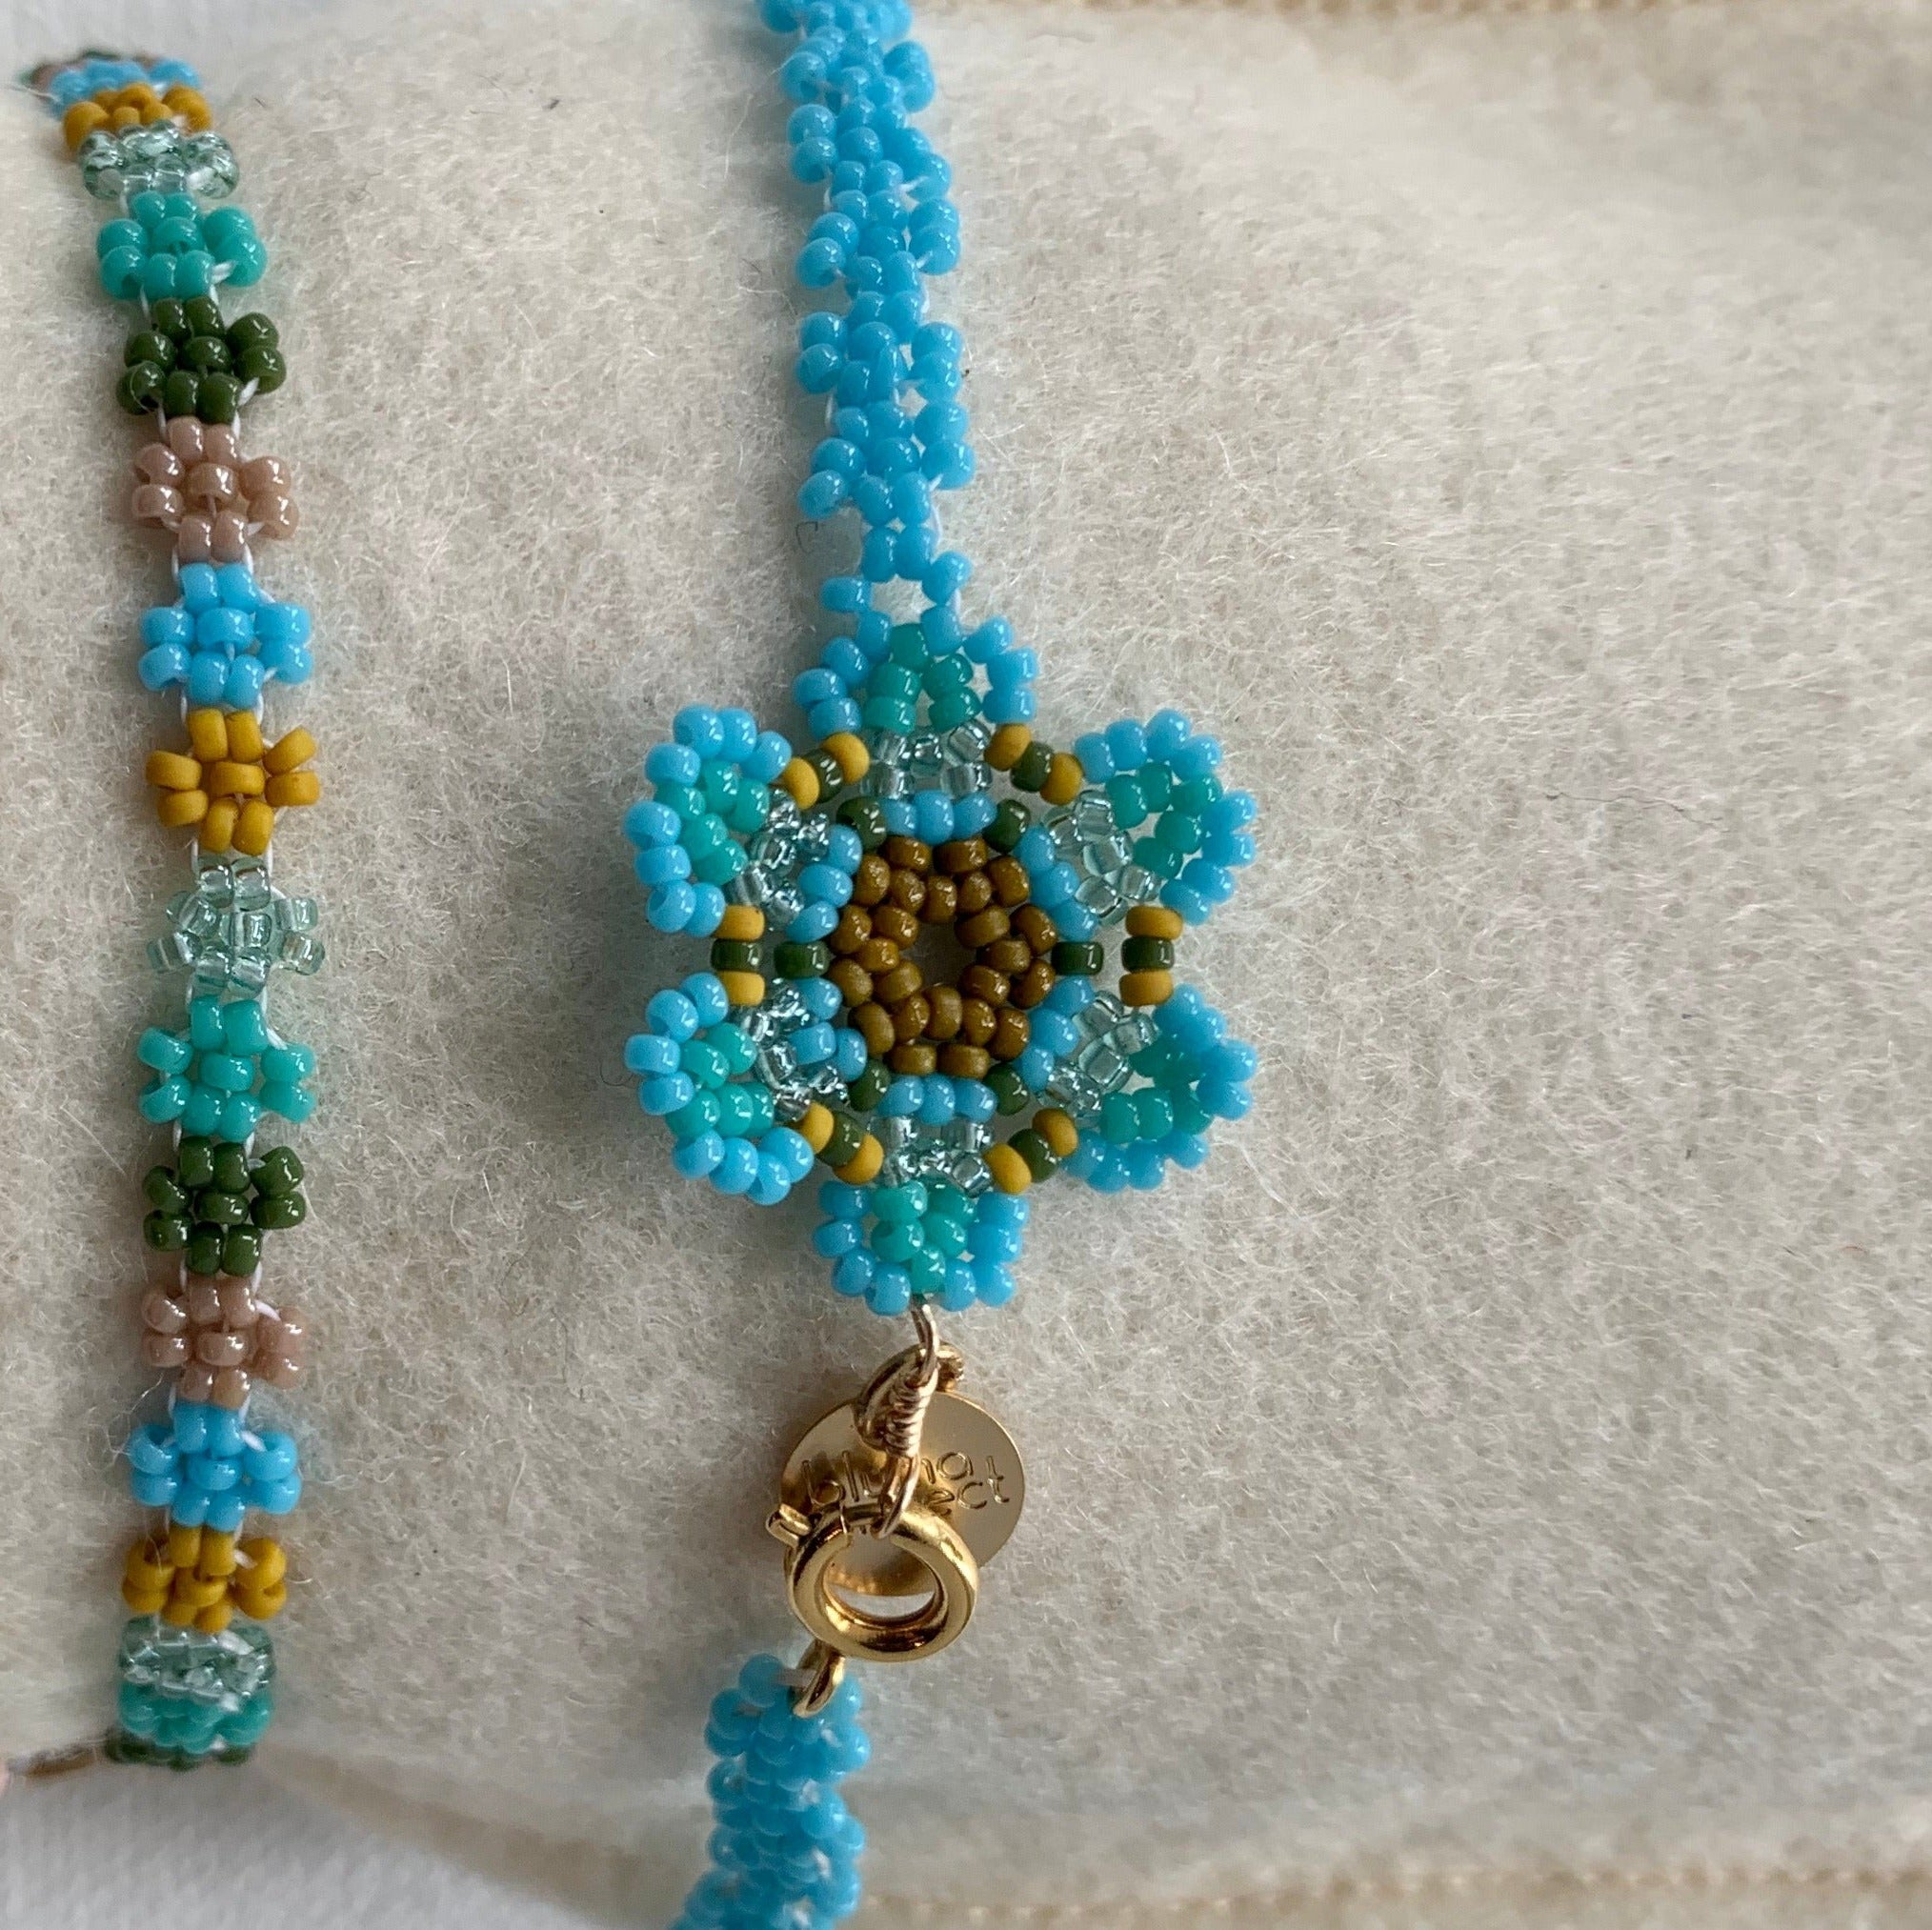 Bluma project bracelet or anklet